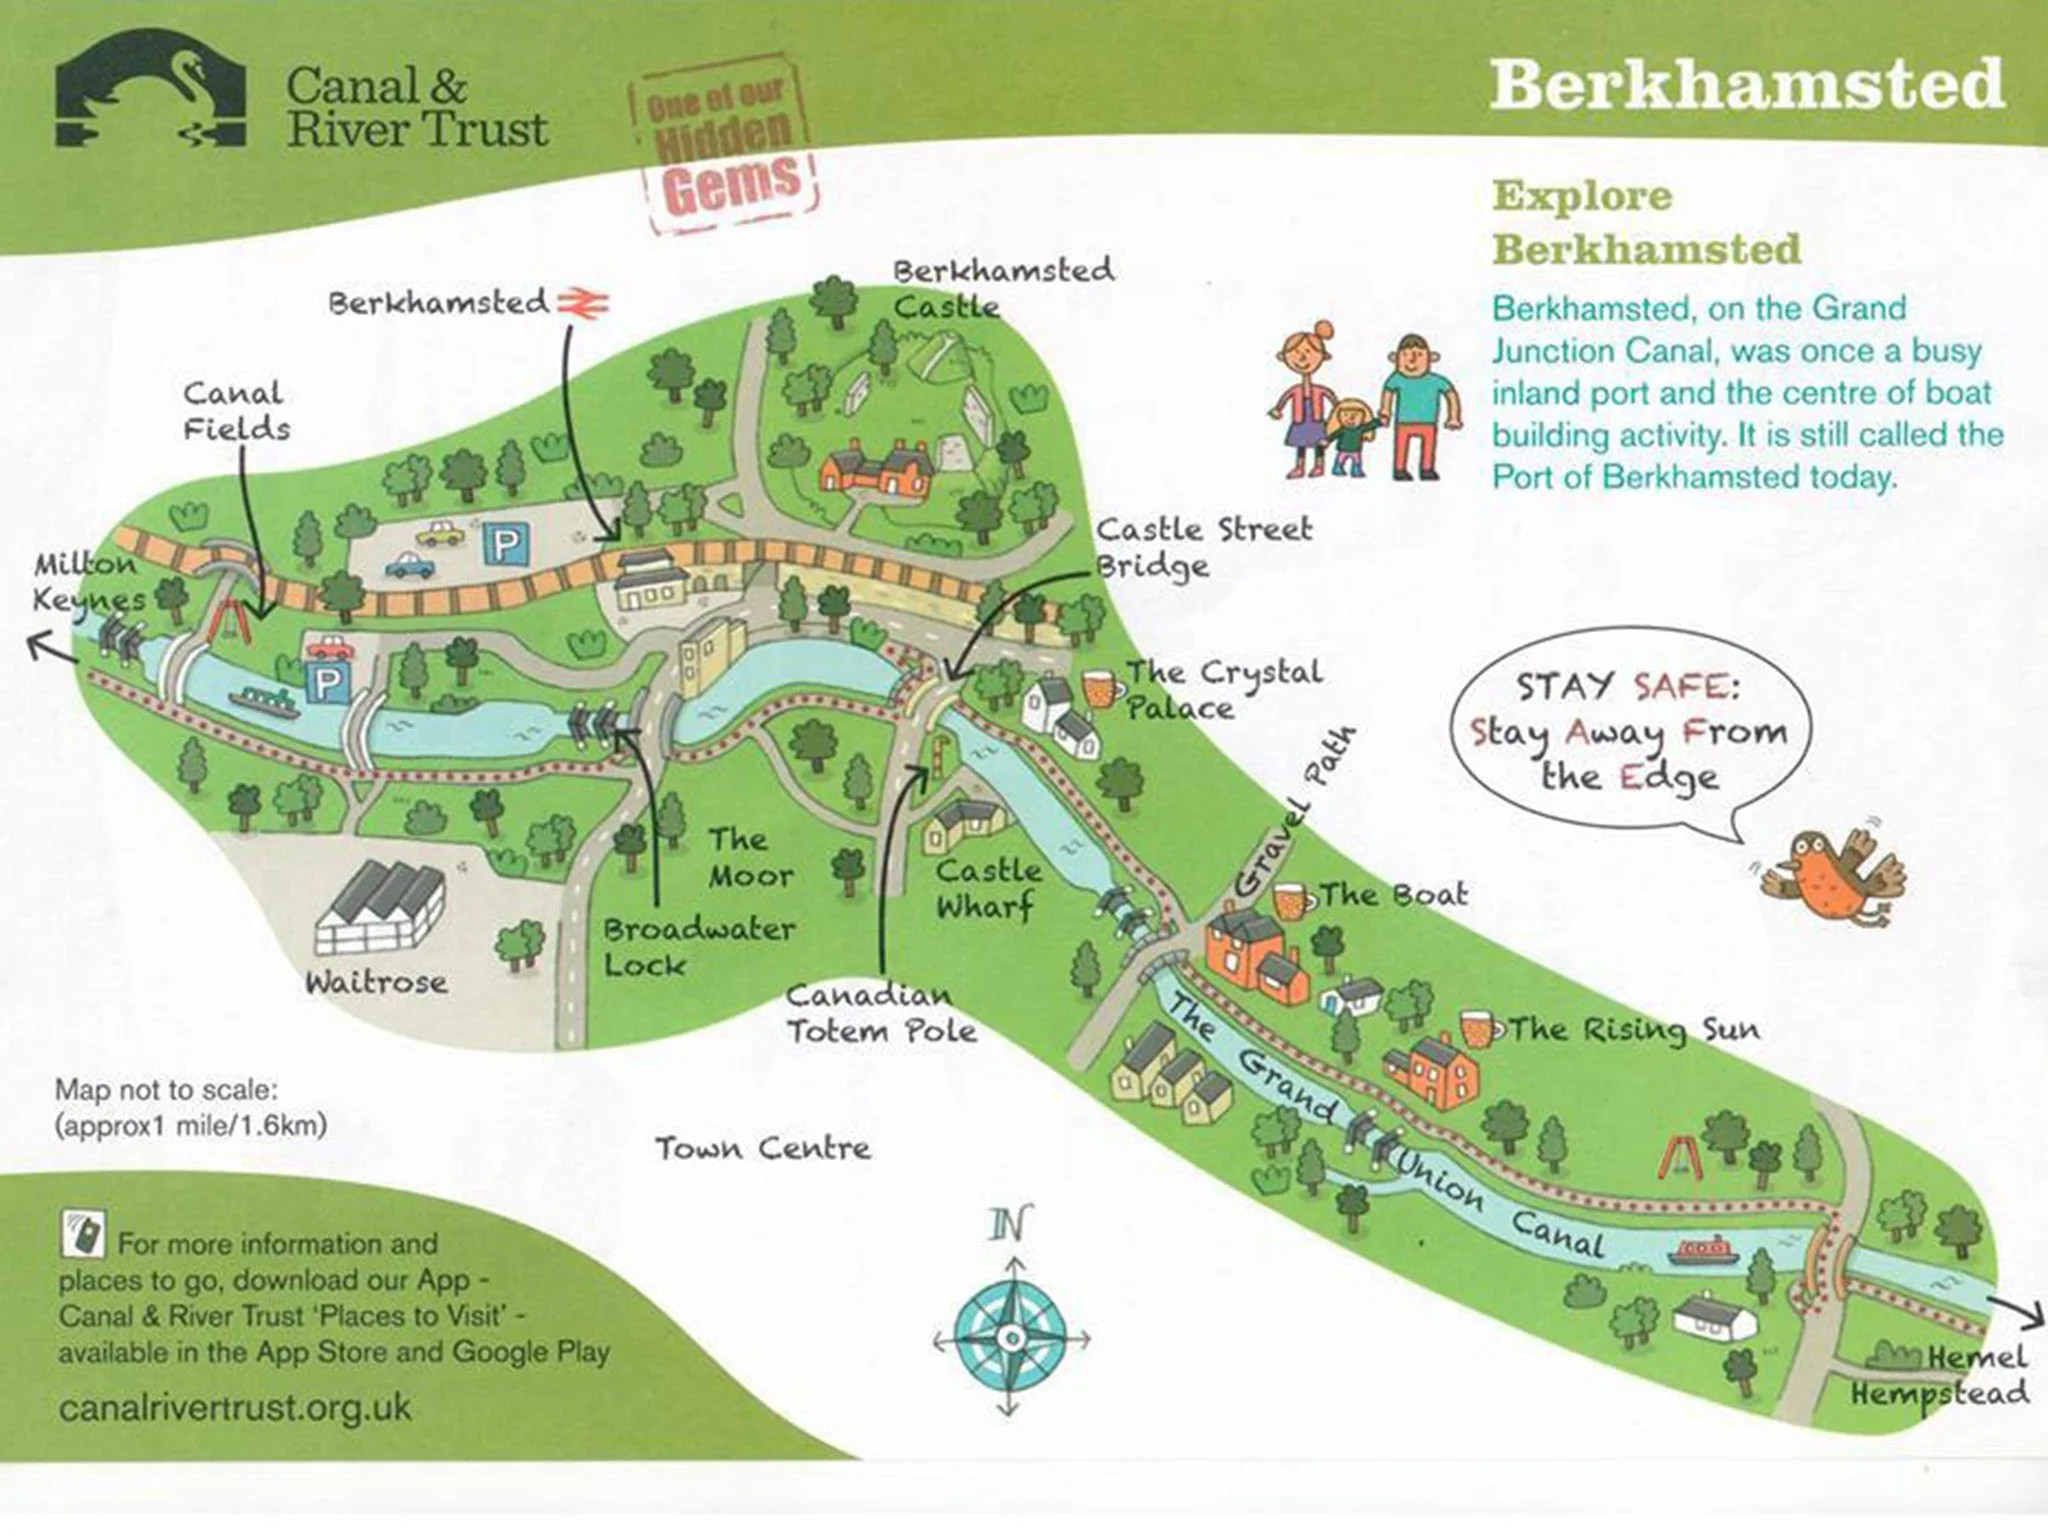 Shaped Map Of Berkhamsted Goes Viral And